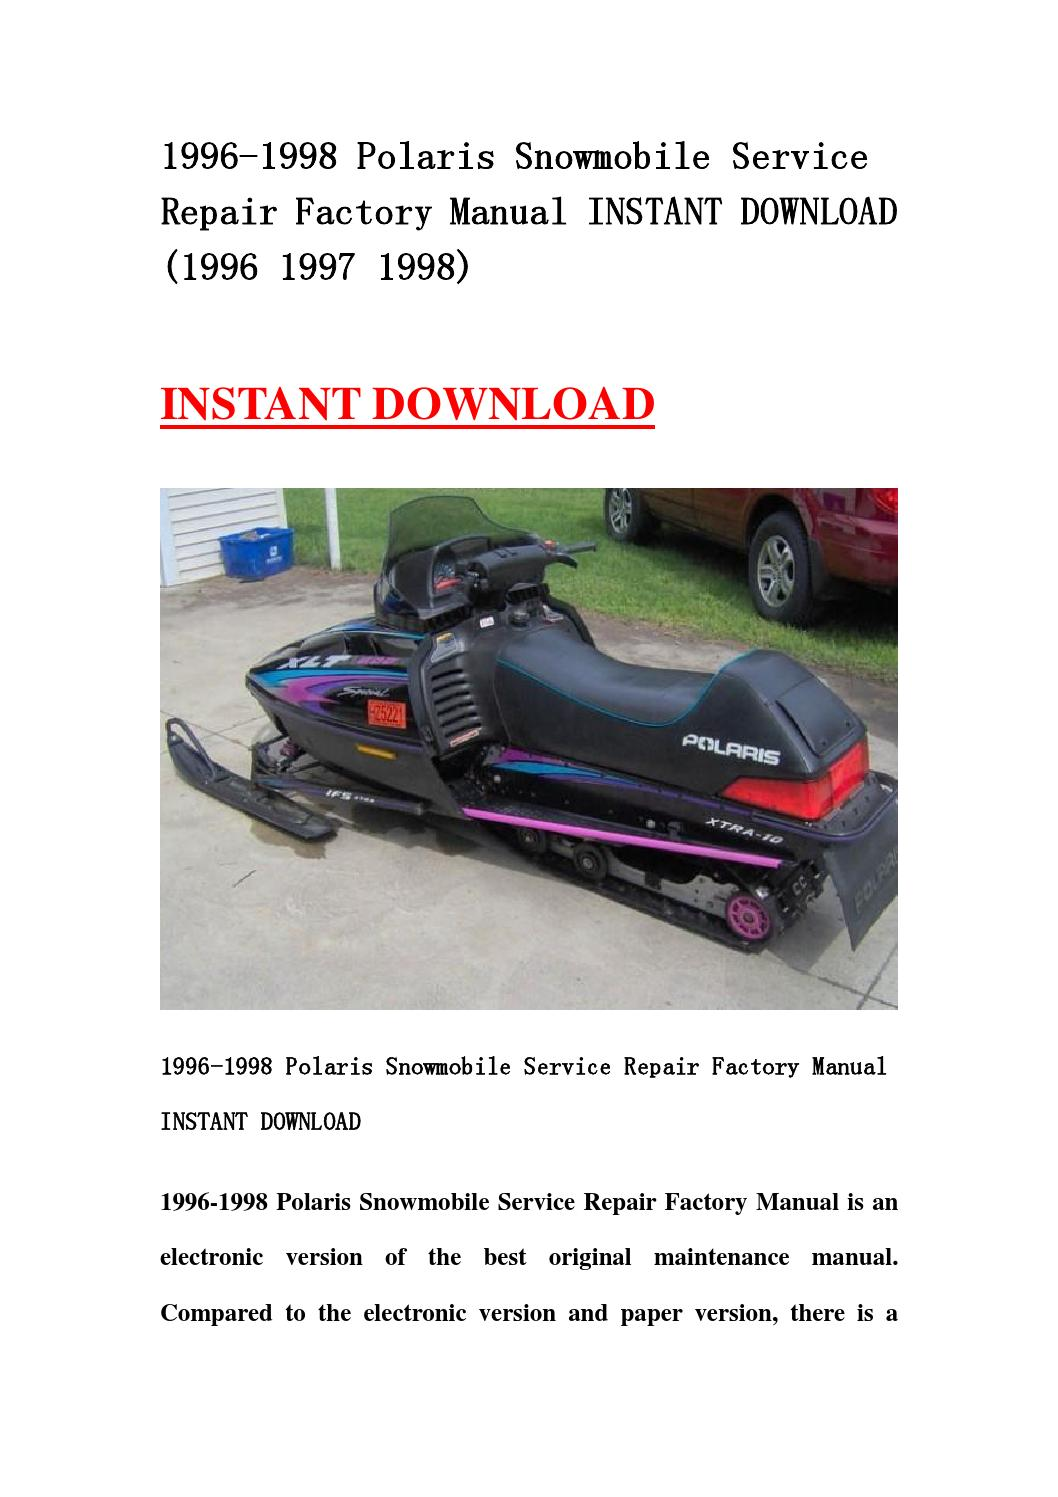 1996 1998 polaris snowmobile service repair factory manual instant download  (1996 1997 1998) by shefjnsehf76 - issuu